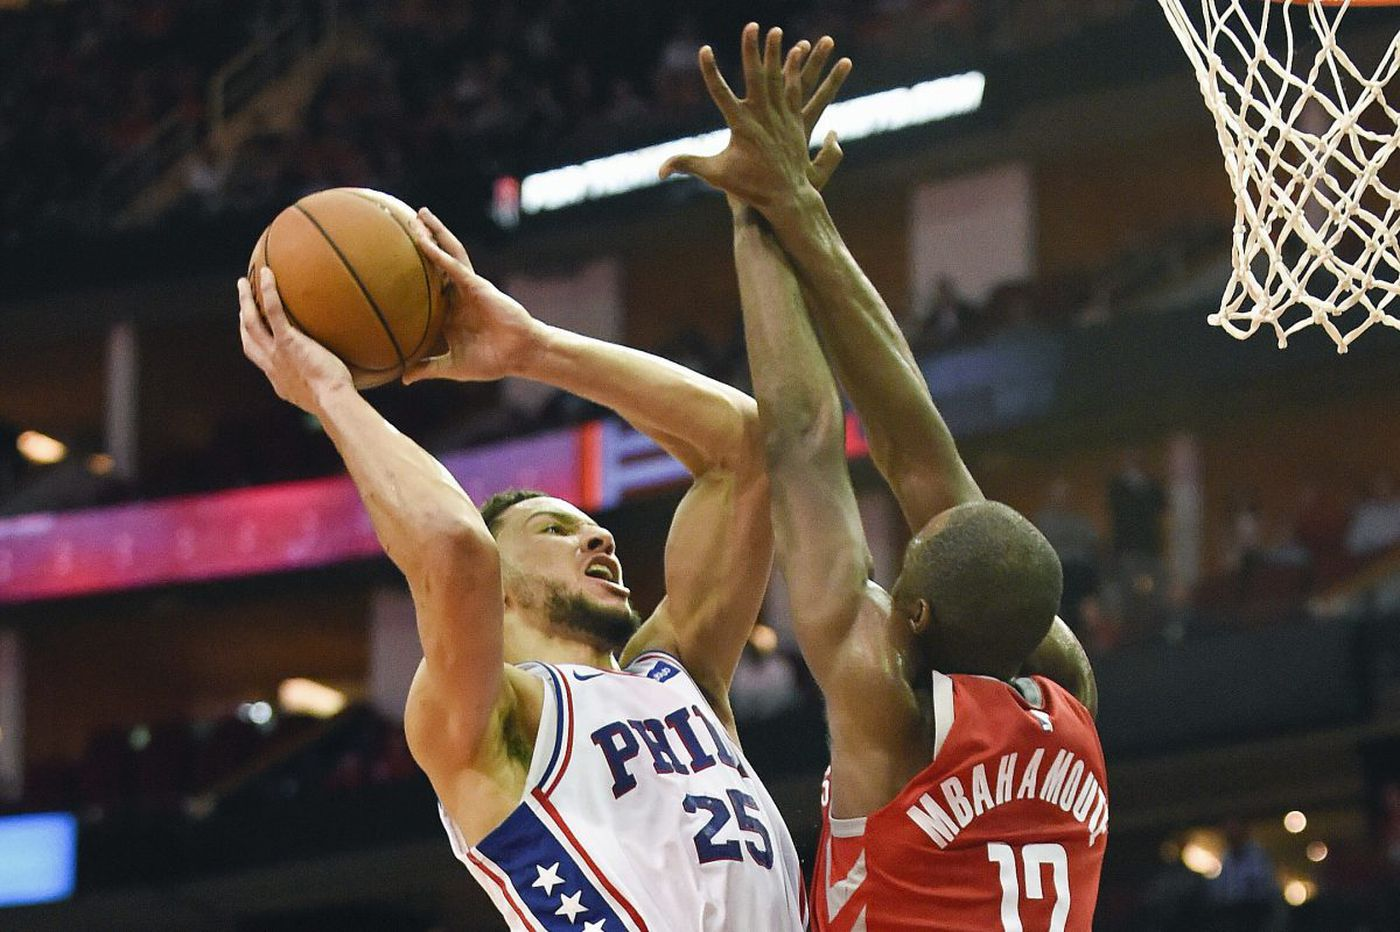 Sixers 115, Rockets 107: Five quick thoughts on Philly's win